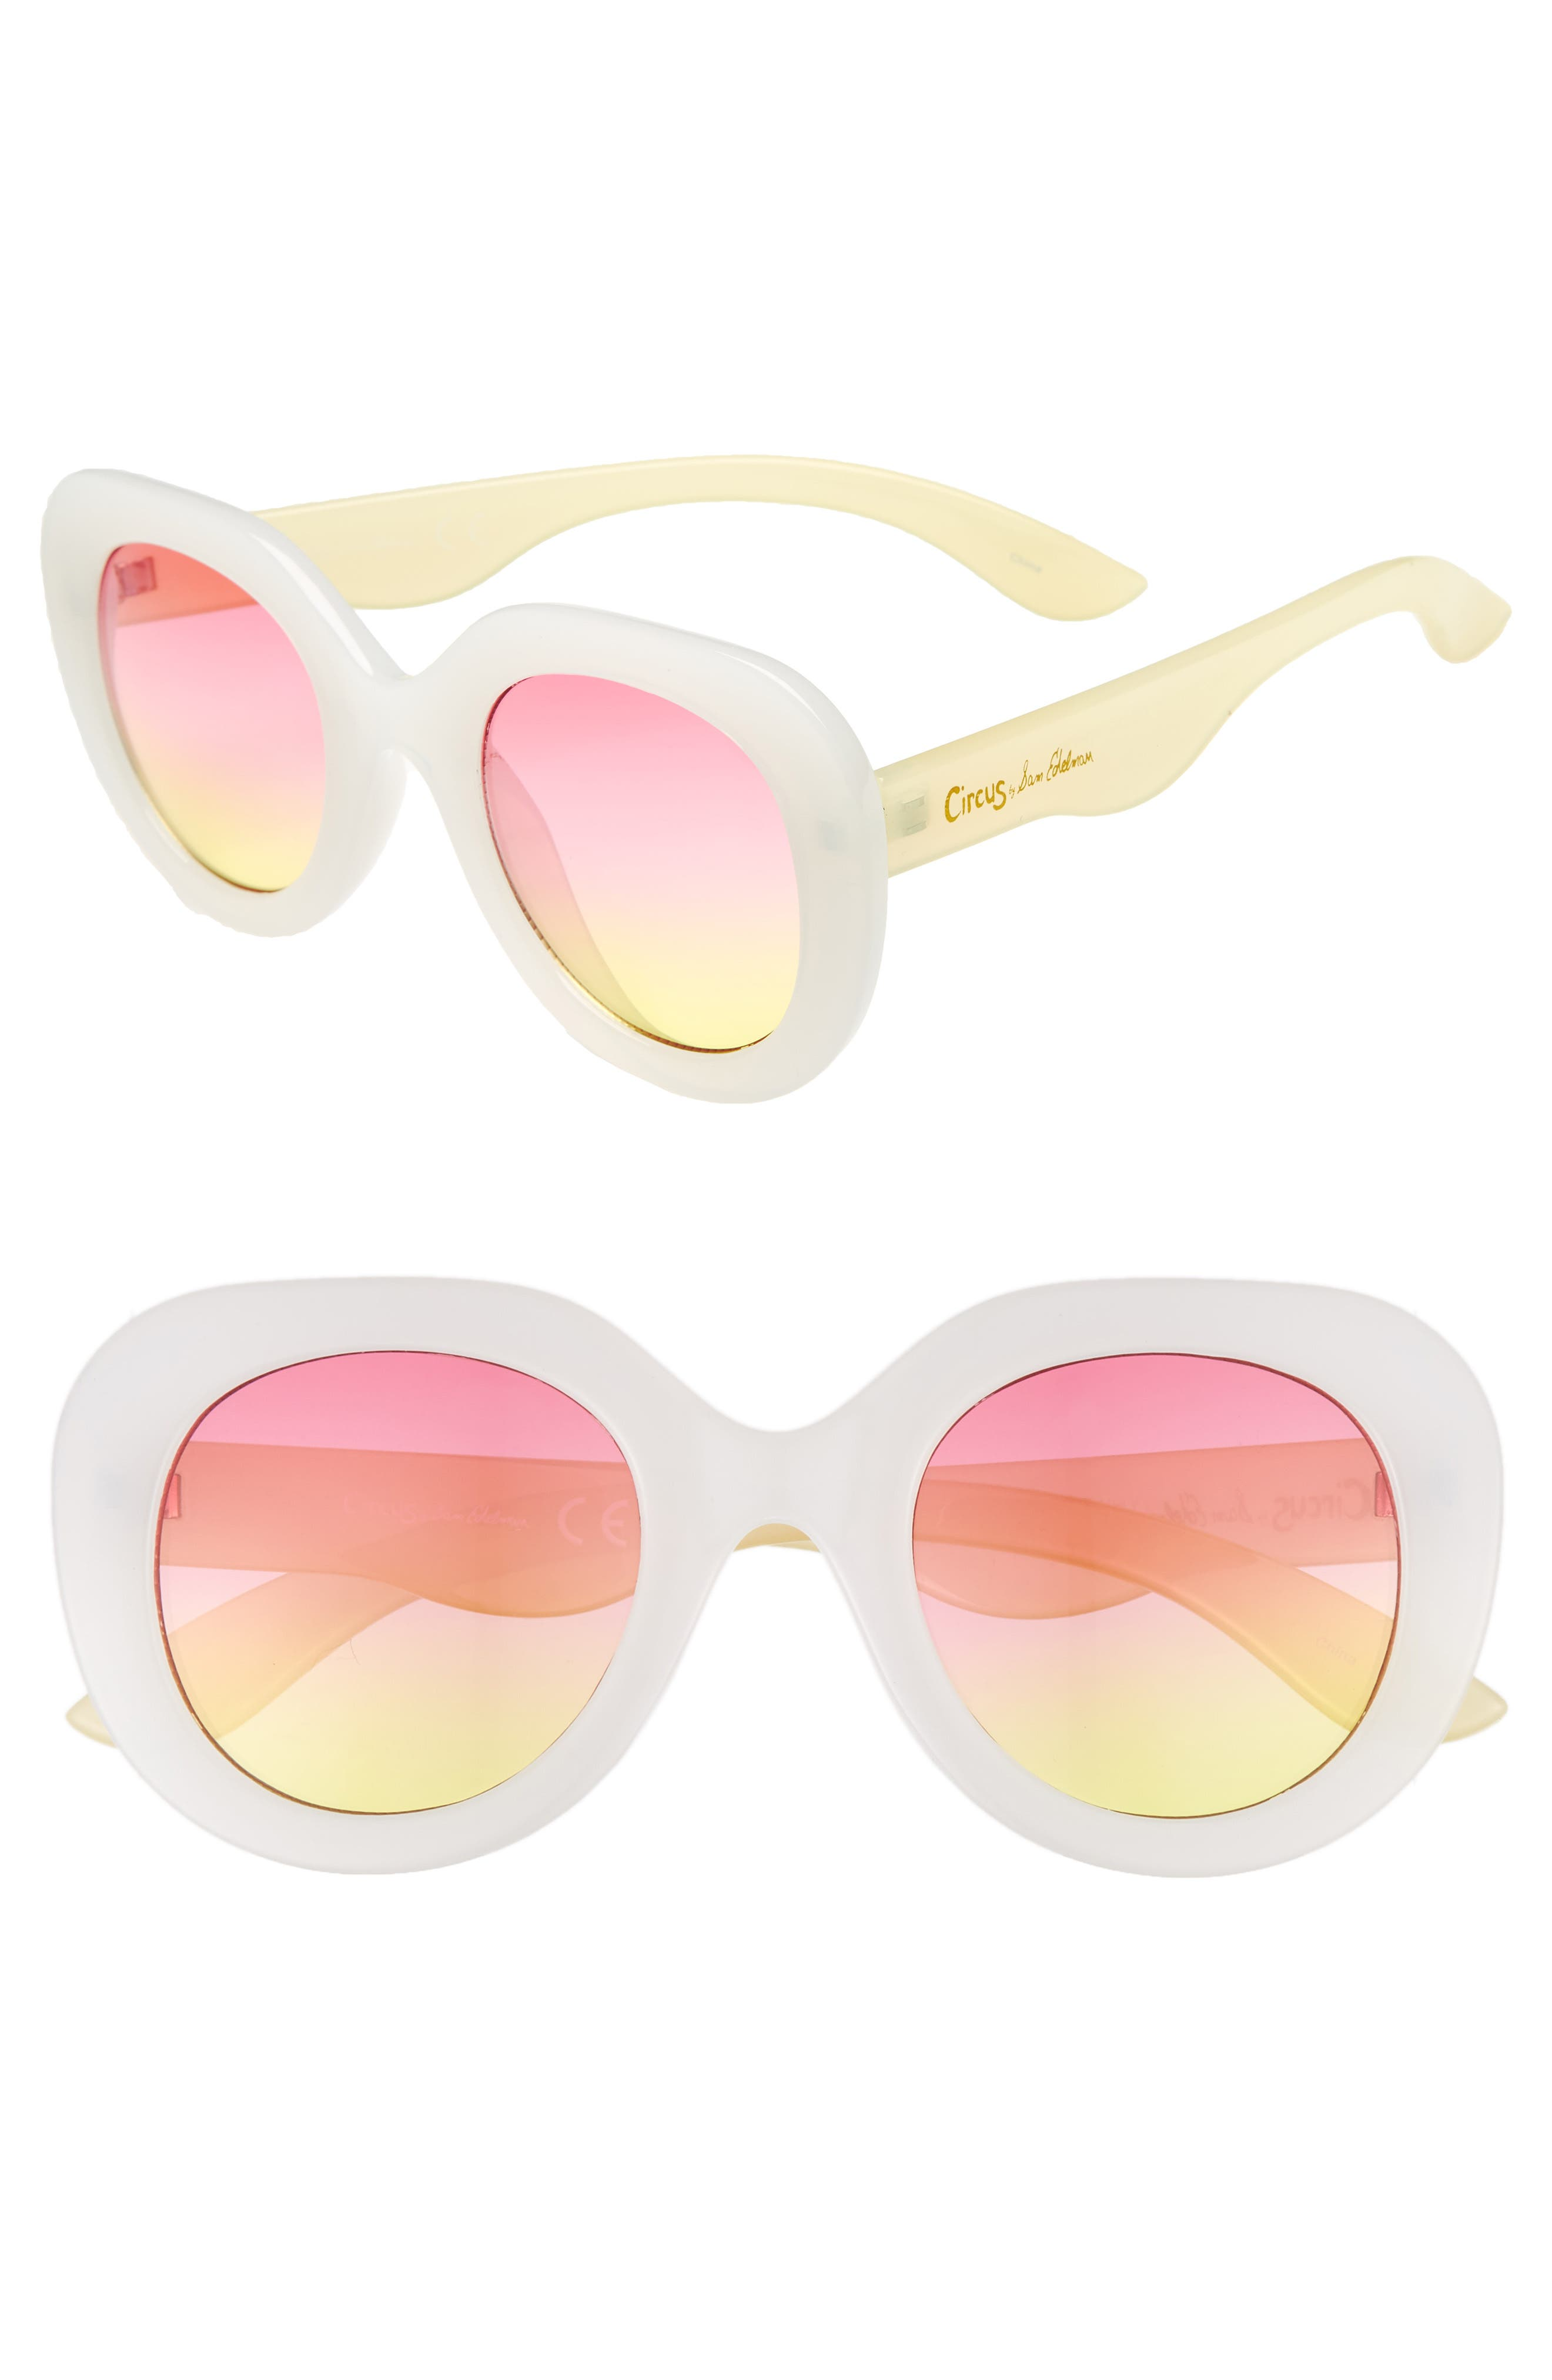 45mm Round Sunglasses,                             Main thumbnail 1, color,                             White/ Yellow